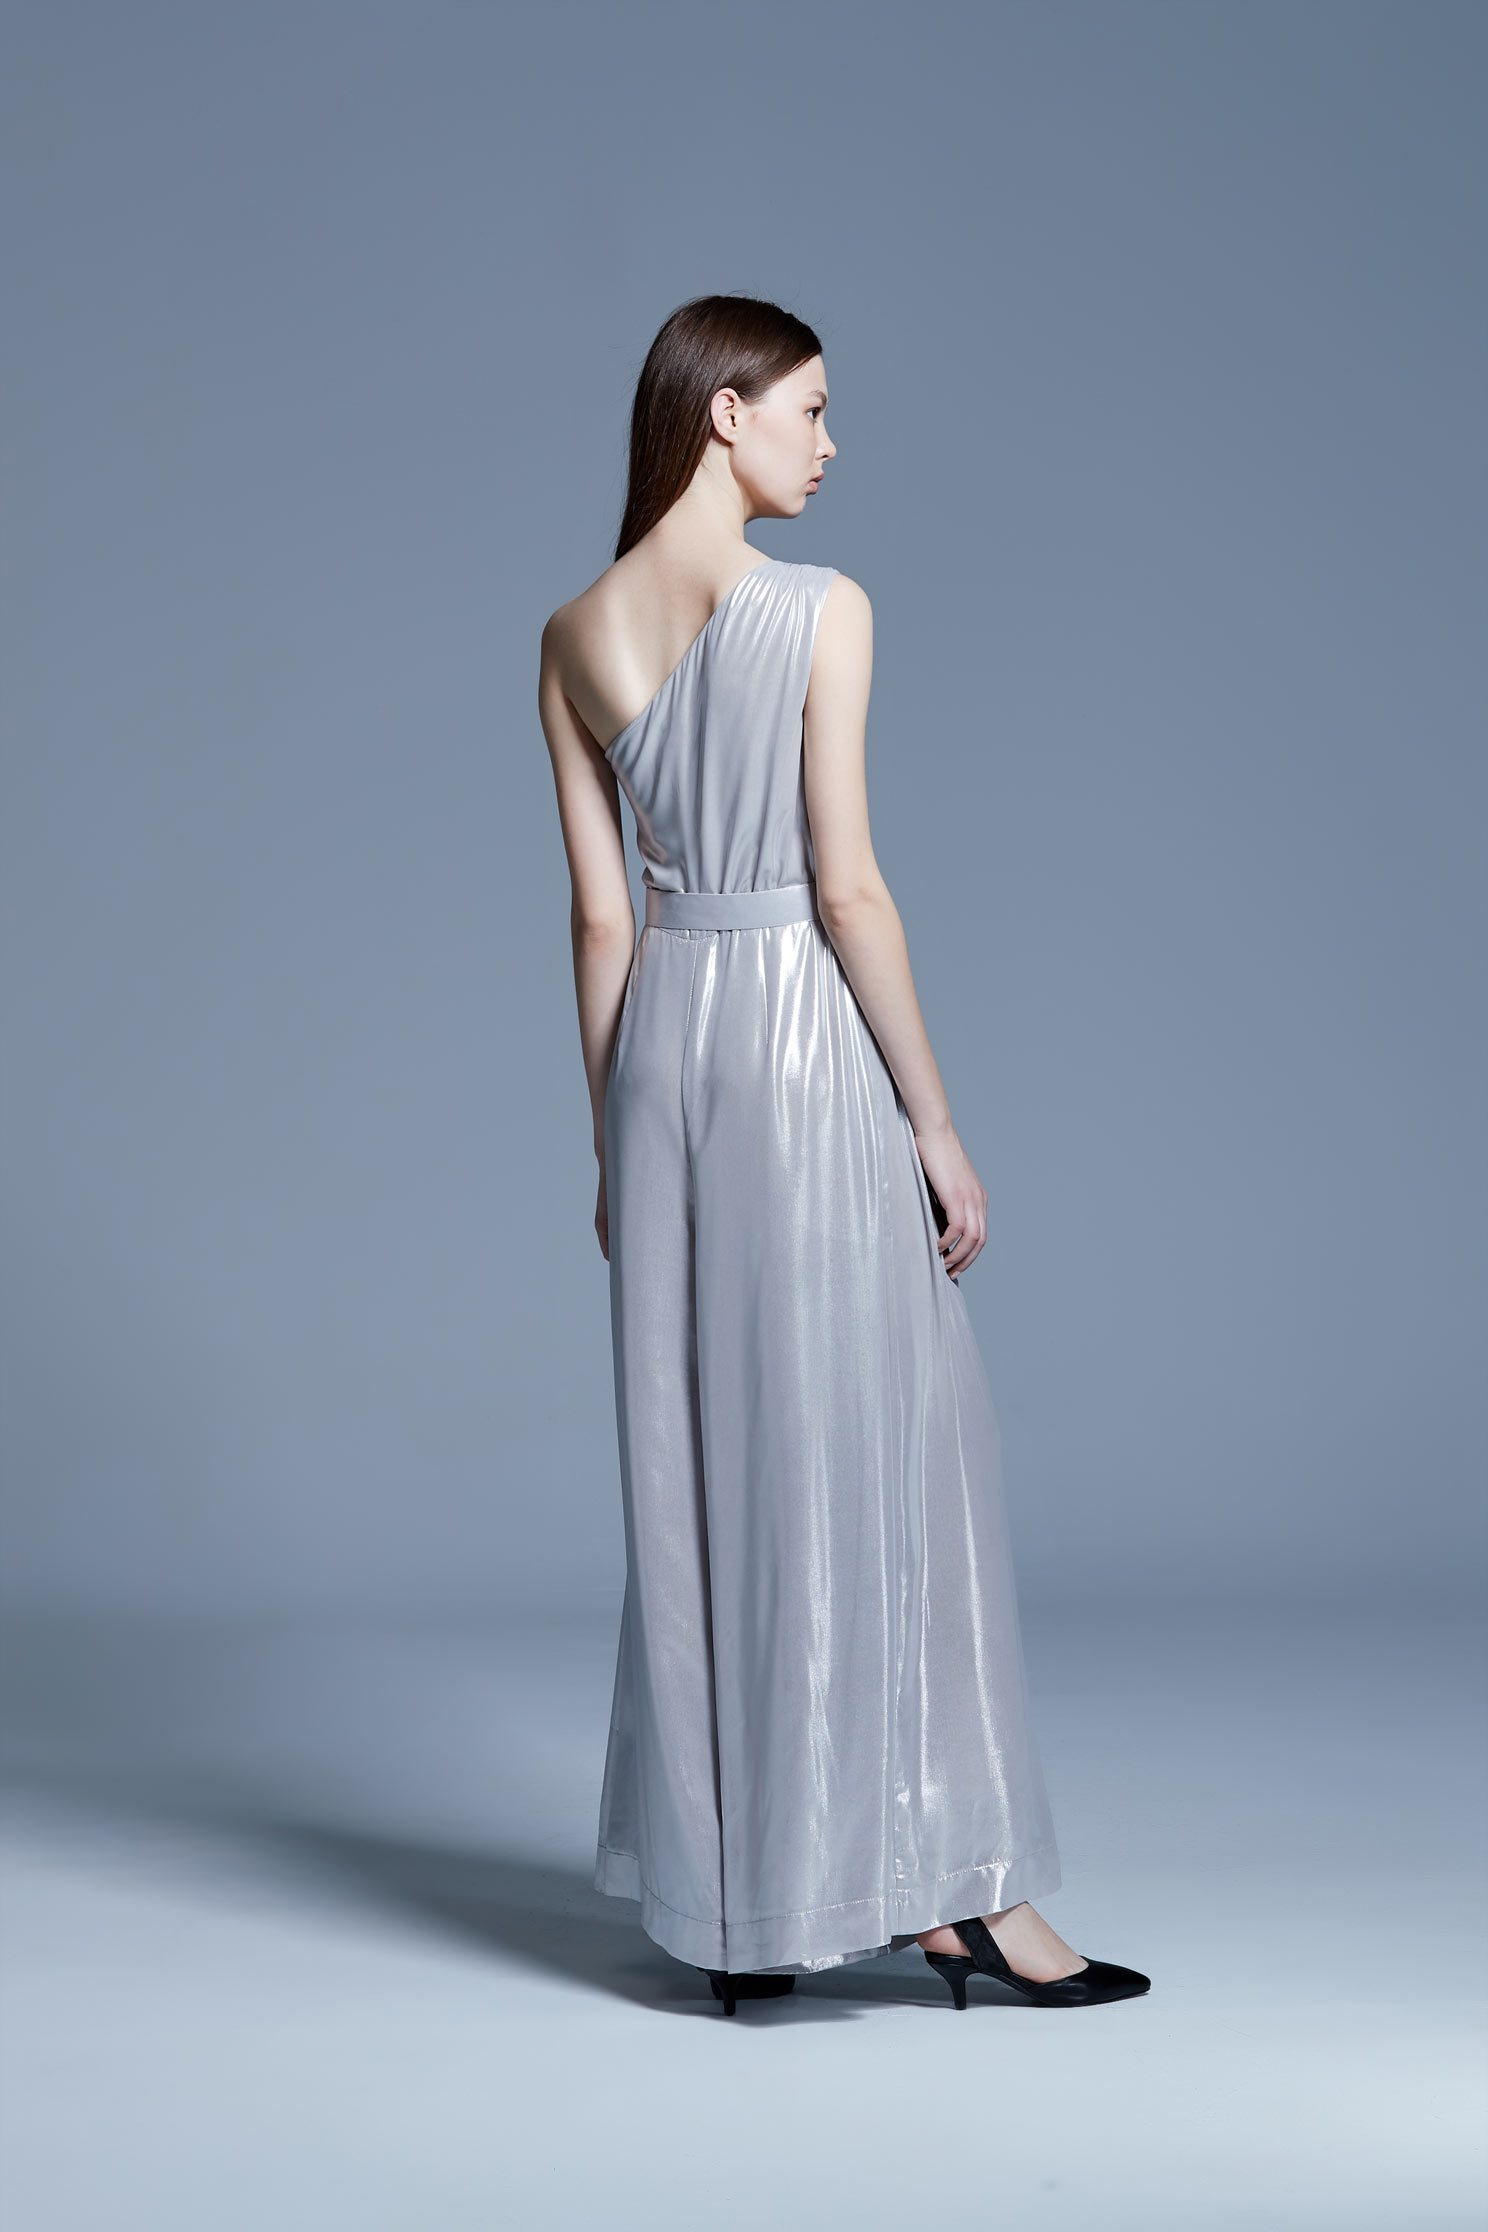 Water-light silver satin jumpsuit wide-leg pants,culottespants,cocktaildress,eveningwear,pants,jumpsuit